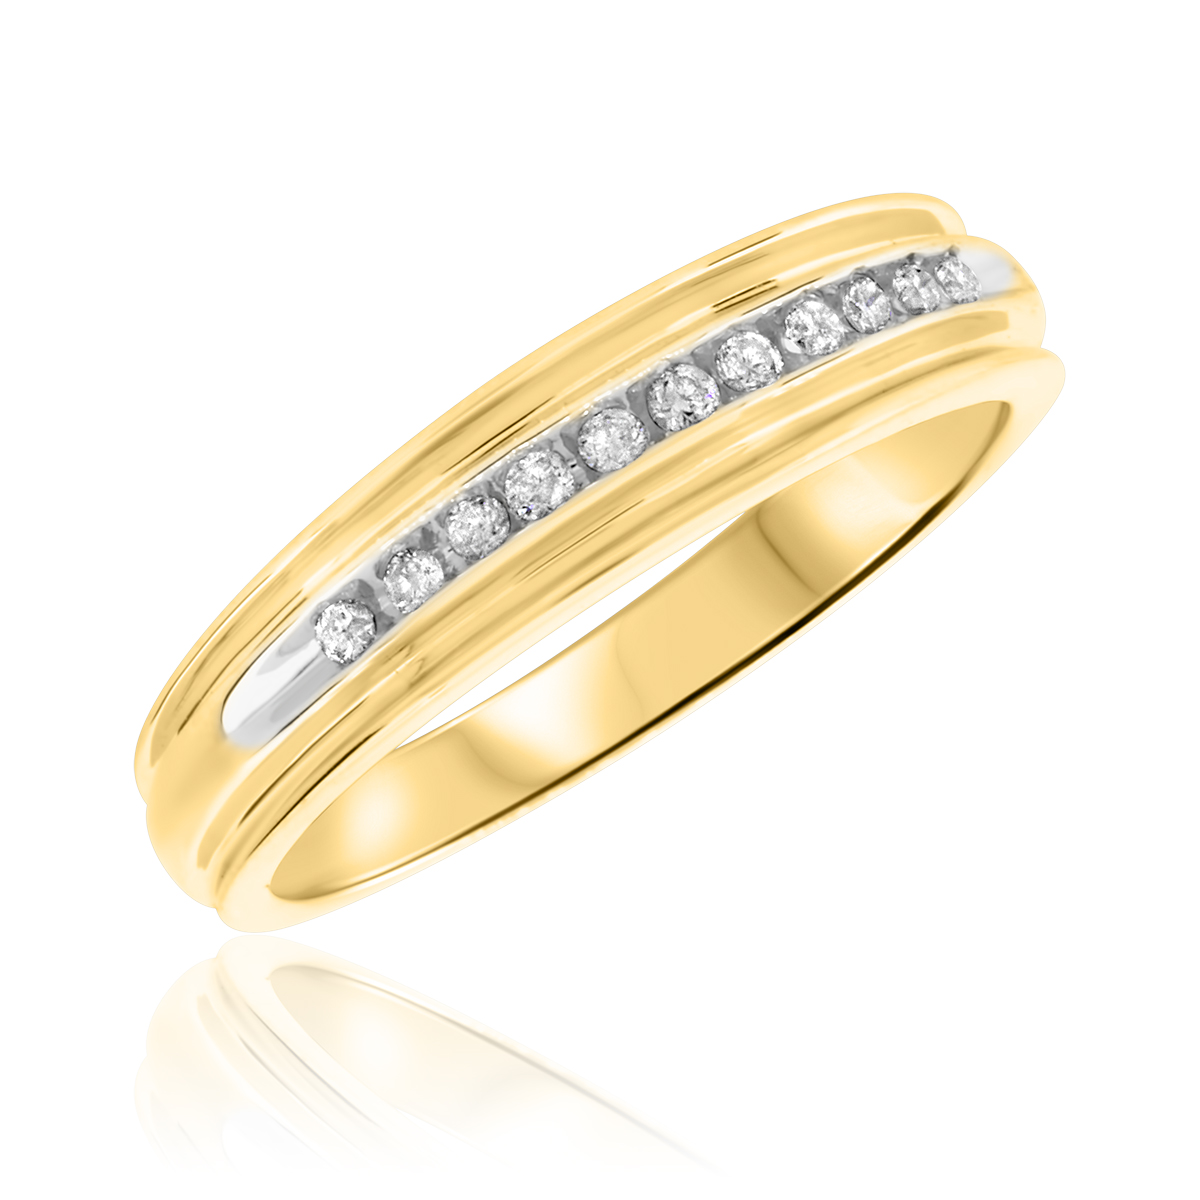 1 3 CT TW Diamond His And Hers Wedding Band Set 14K Yellow Gold